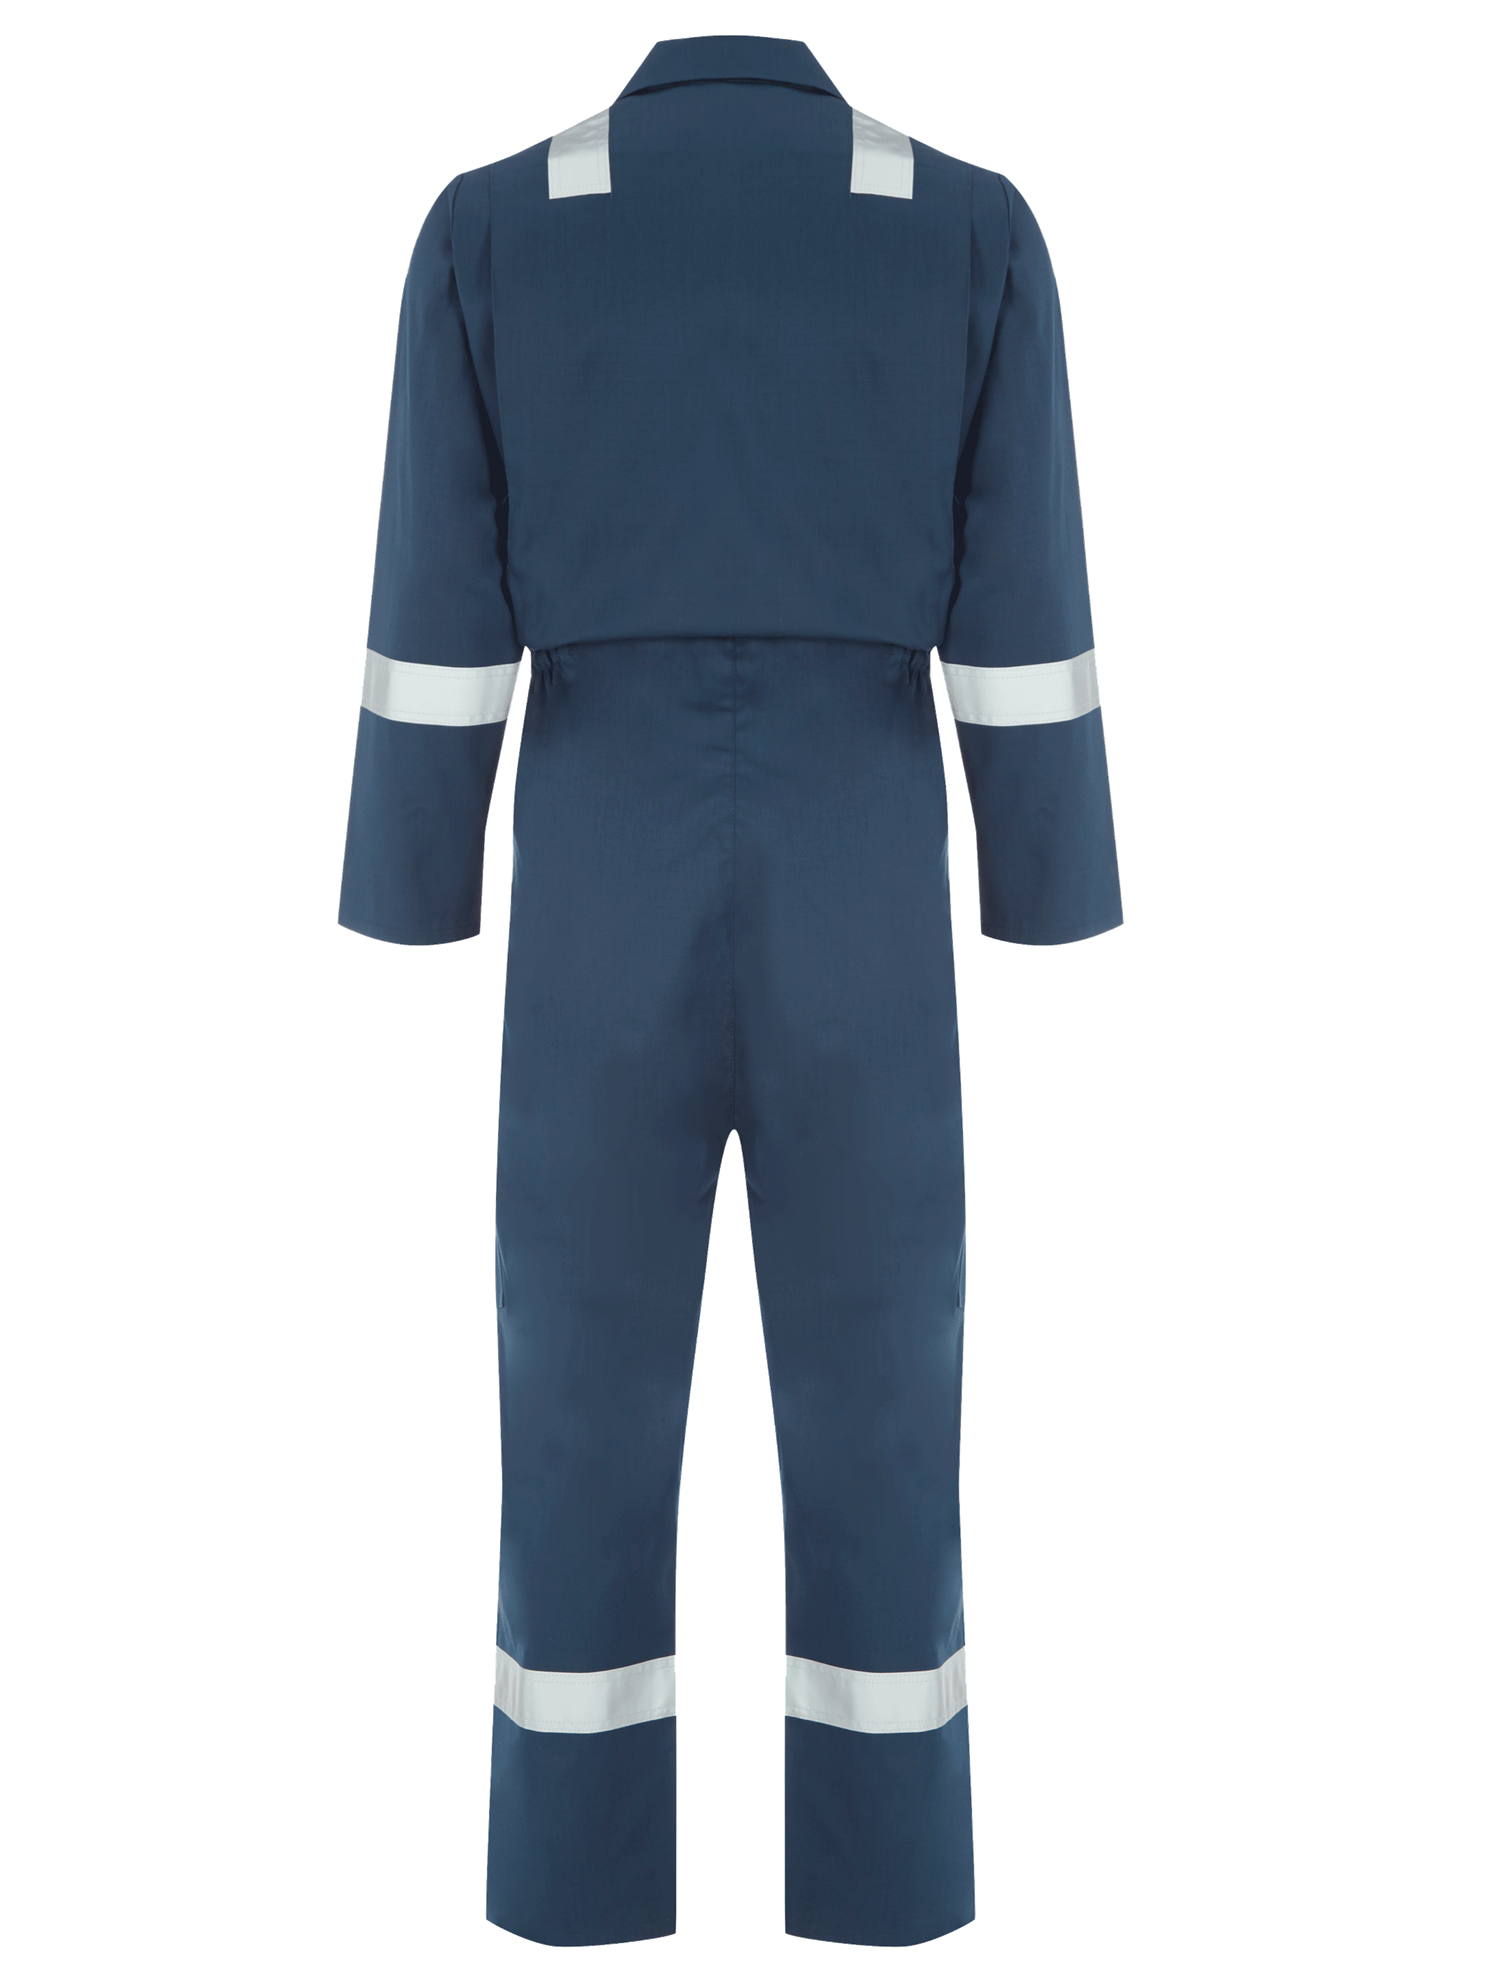 Picture of FR Anti-Static Coverall - Navy